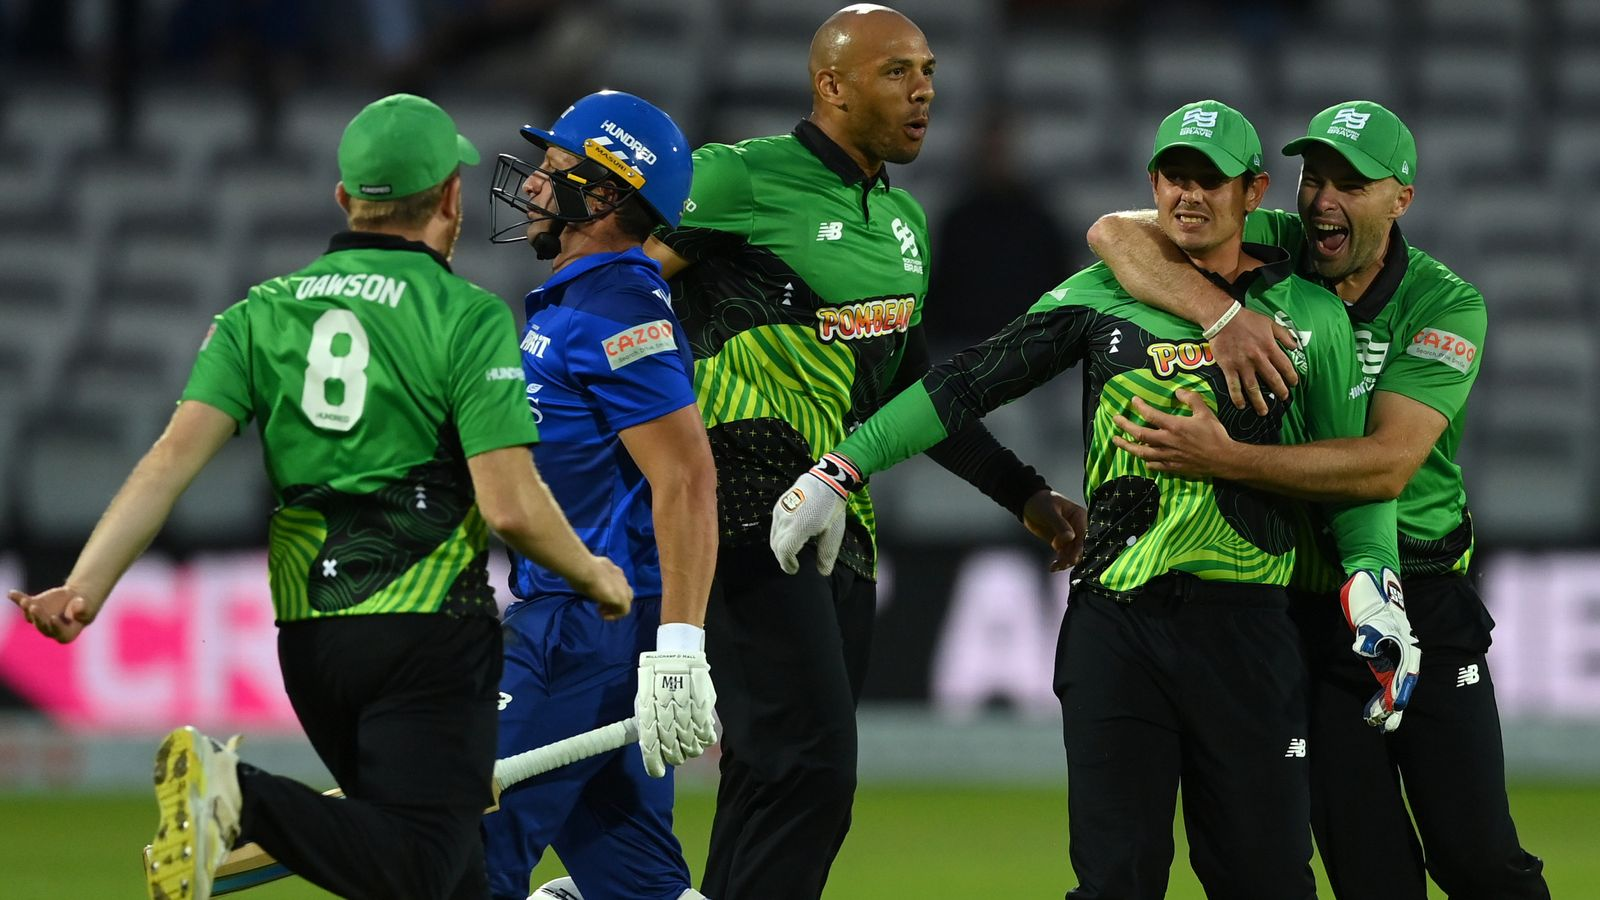 The Hundred: London Spirit remain winless after losing Lord's thriller to Southern Brave